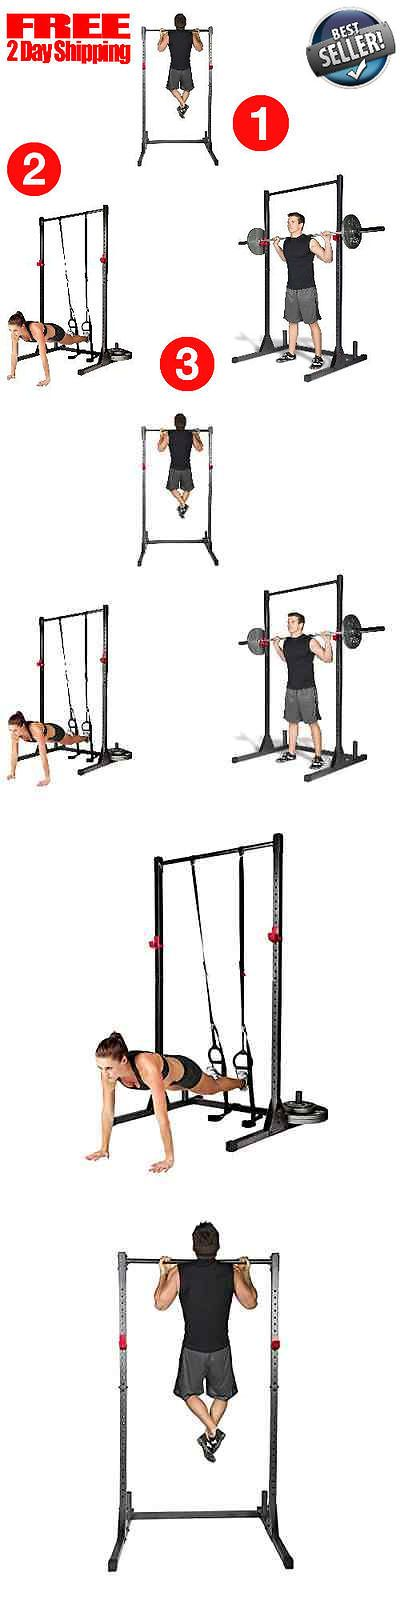 Pull Up Bars 179816: Home Gym Pull Up Bar Power Rack Exercise Stand Body Building Workout Fitness New BUY IT NOW ONLY: $111.04